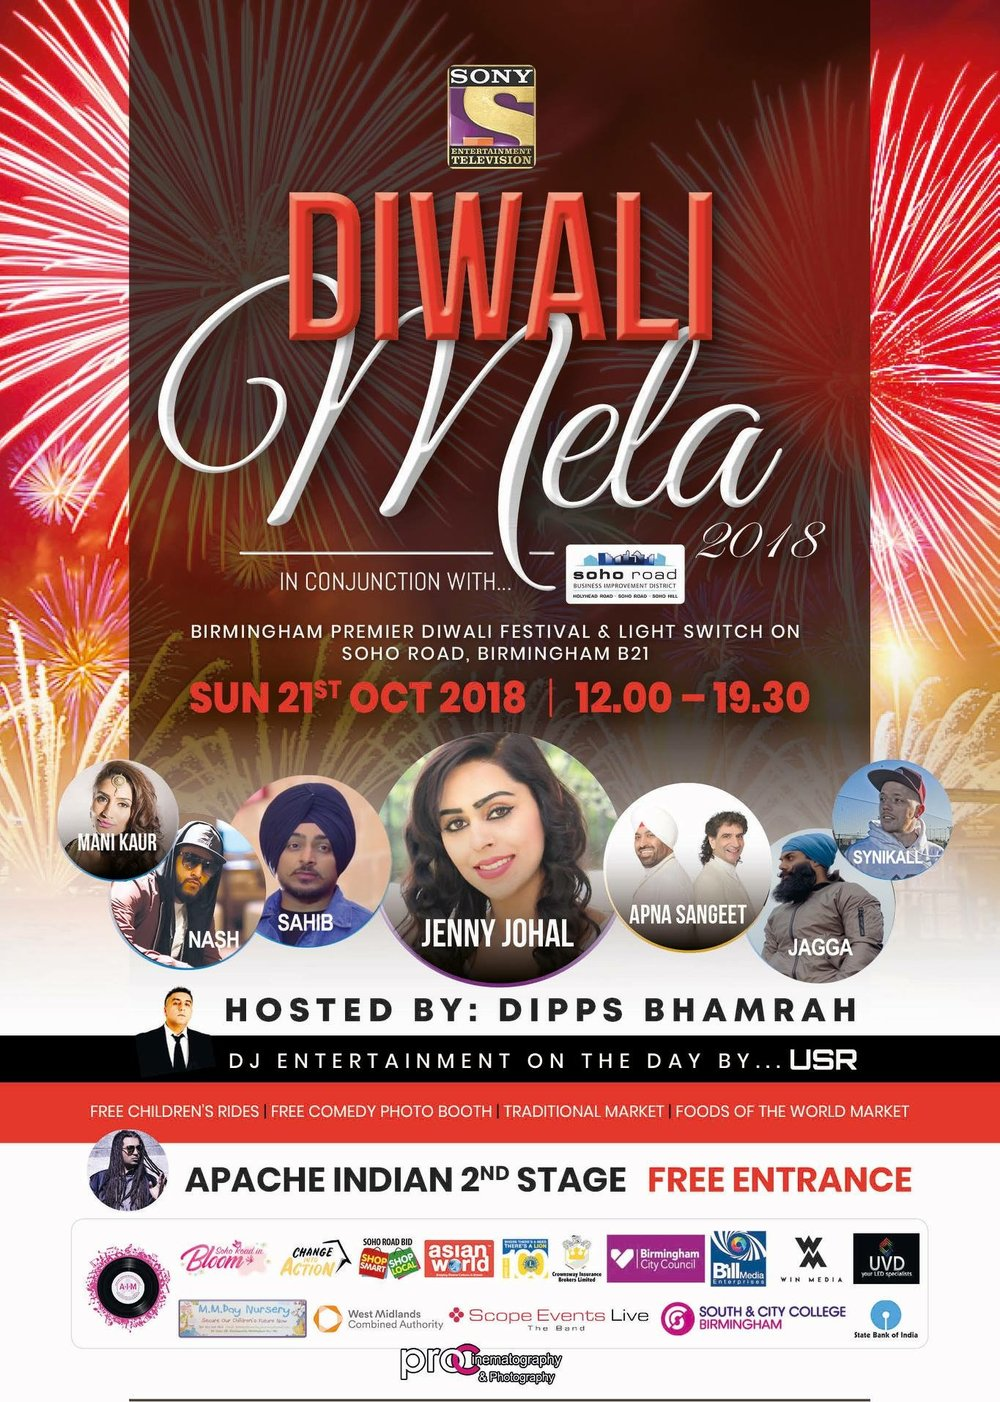 did you see us? - diwali mela 2018